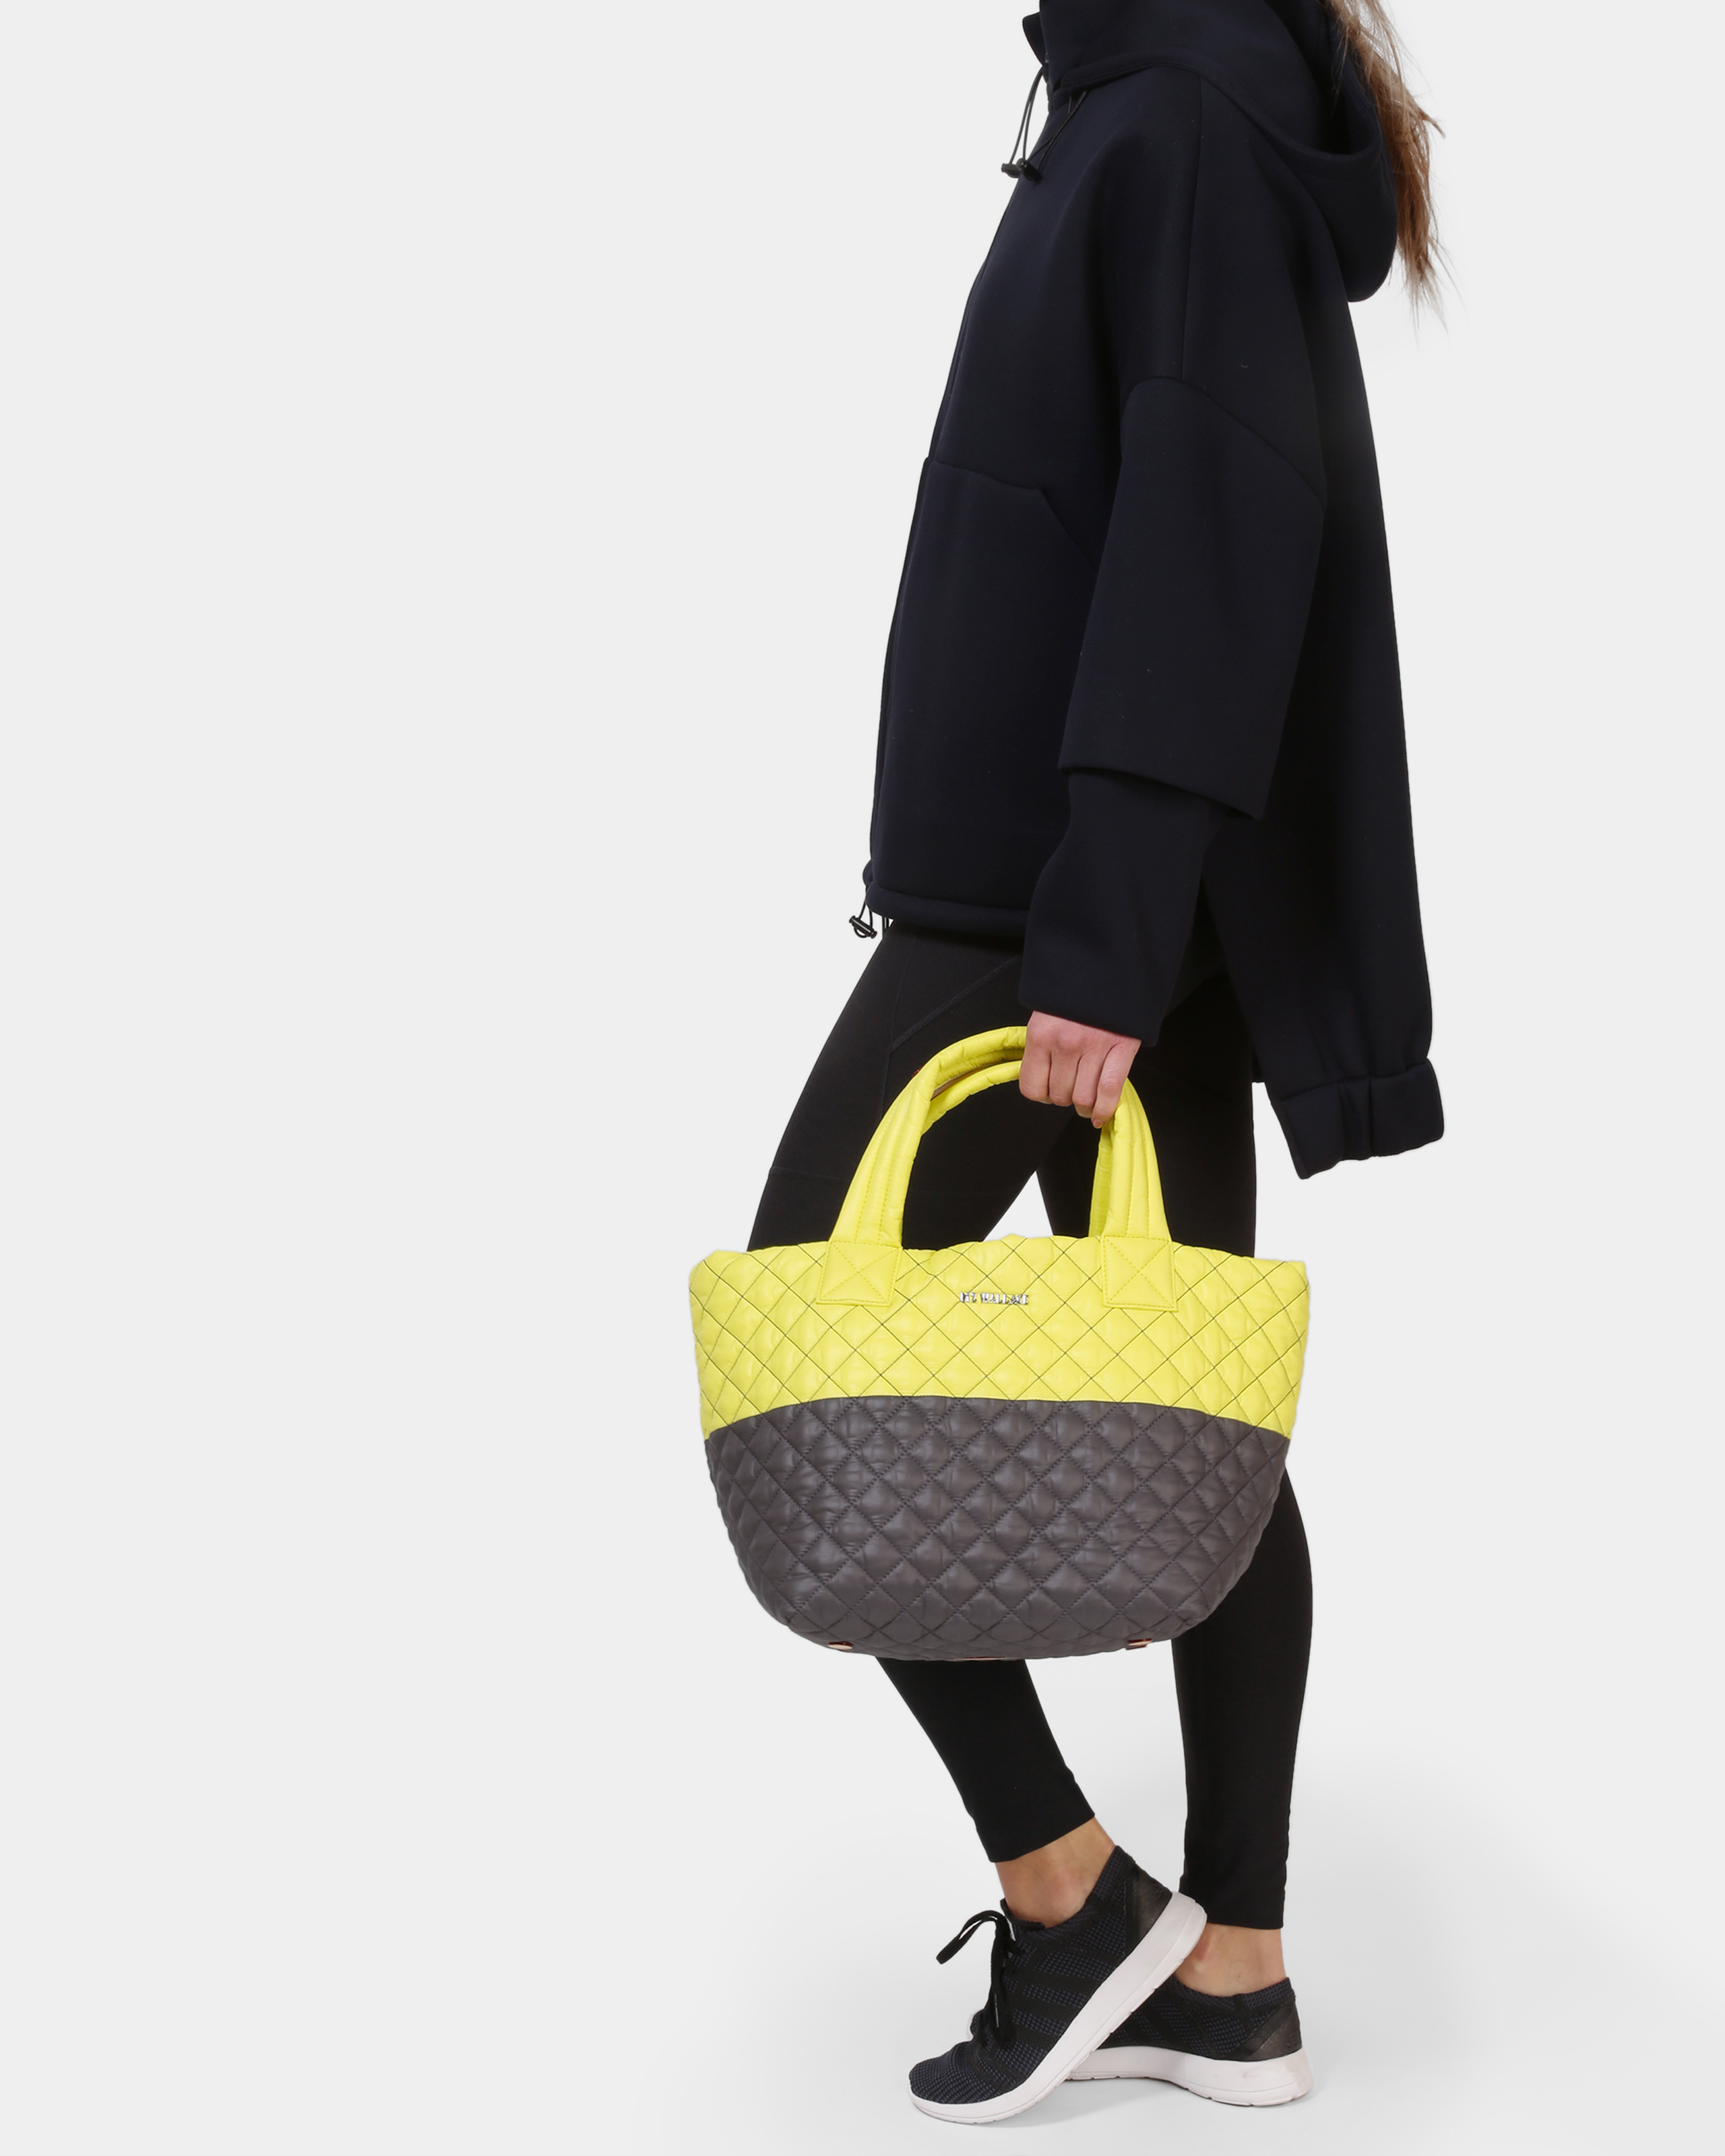 Neon Yellow/Magnet Oxford Metro Tote (3701370) in color Neon Yellow & Magnet